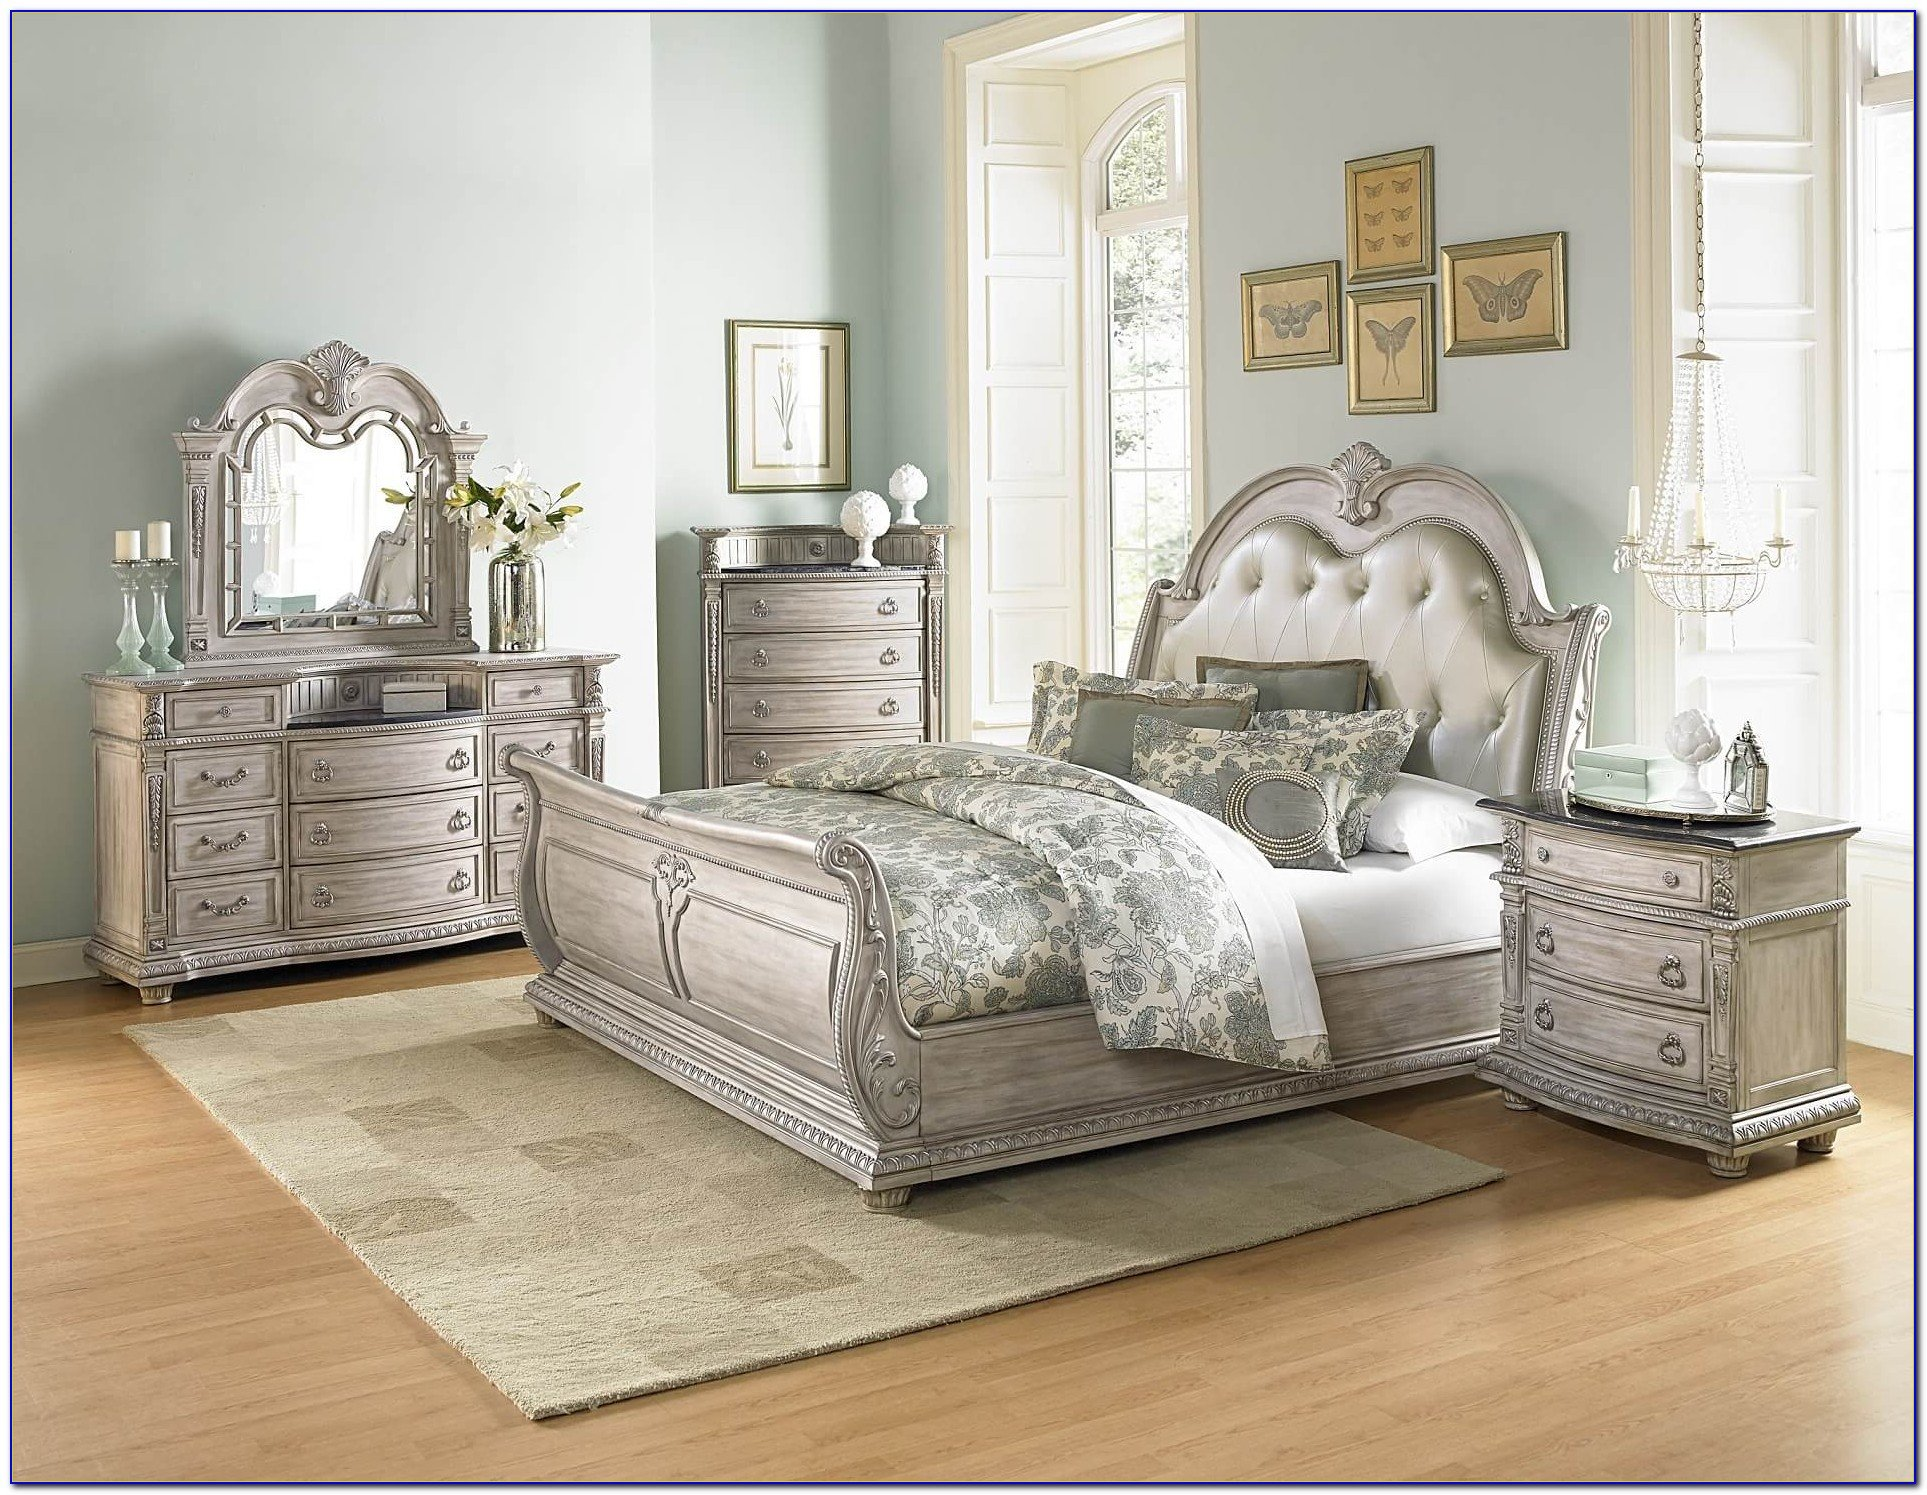 Oak King Bedroom Set Beautiful White Washed Bedroom Furniture Nz Home Design Ideas